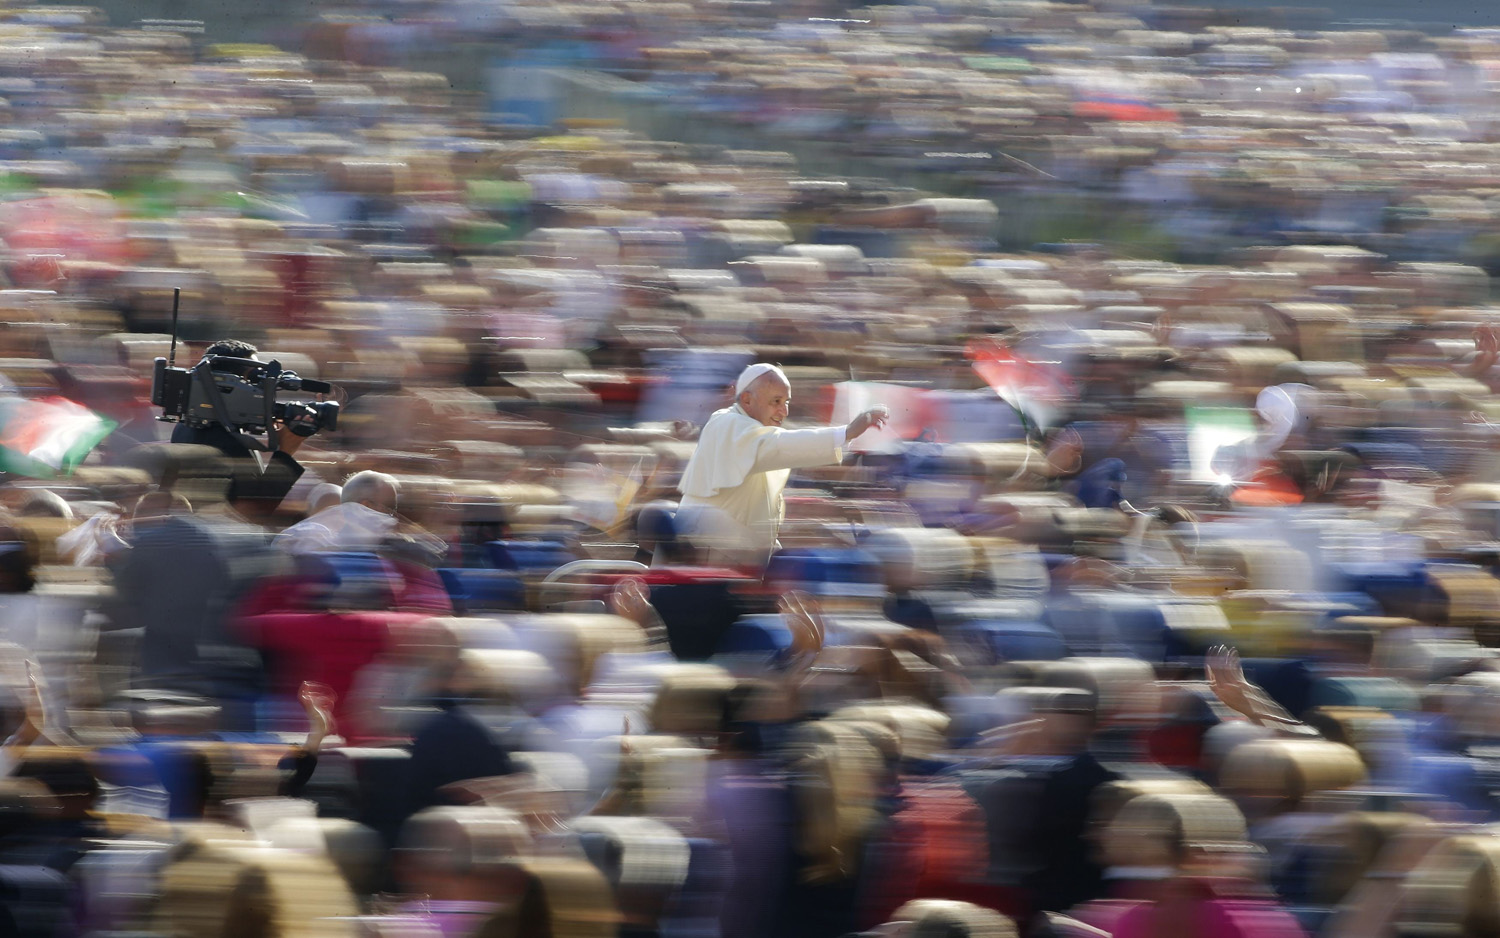 Pope Francis waves as he leads his weekly audience in Saint Peter's Square at the Vatican on Oct. 8, 2014.